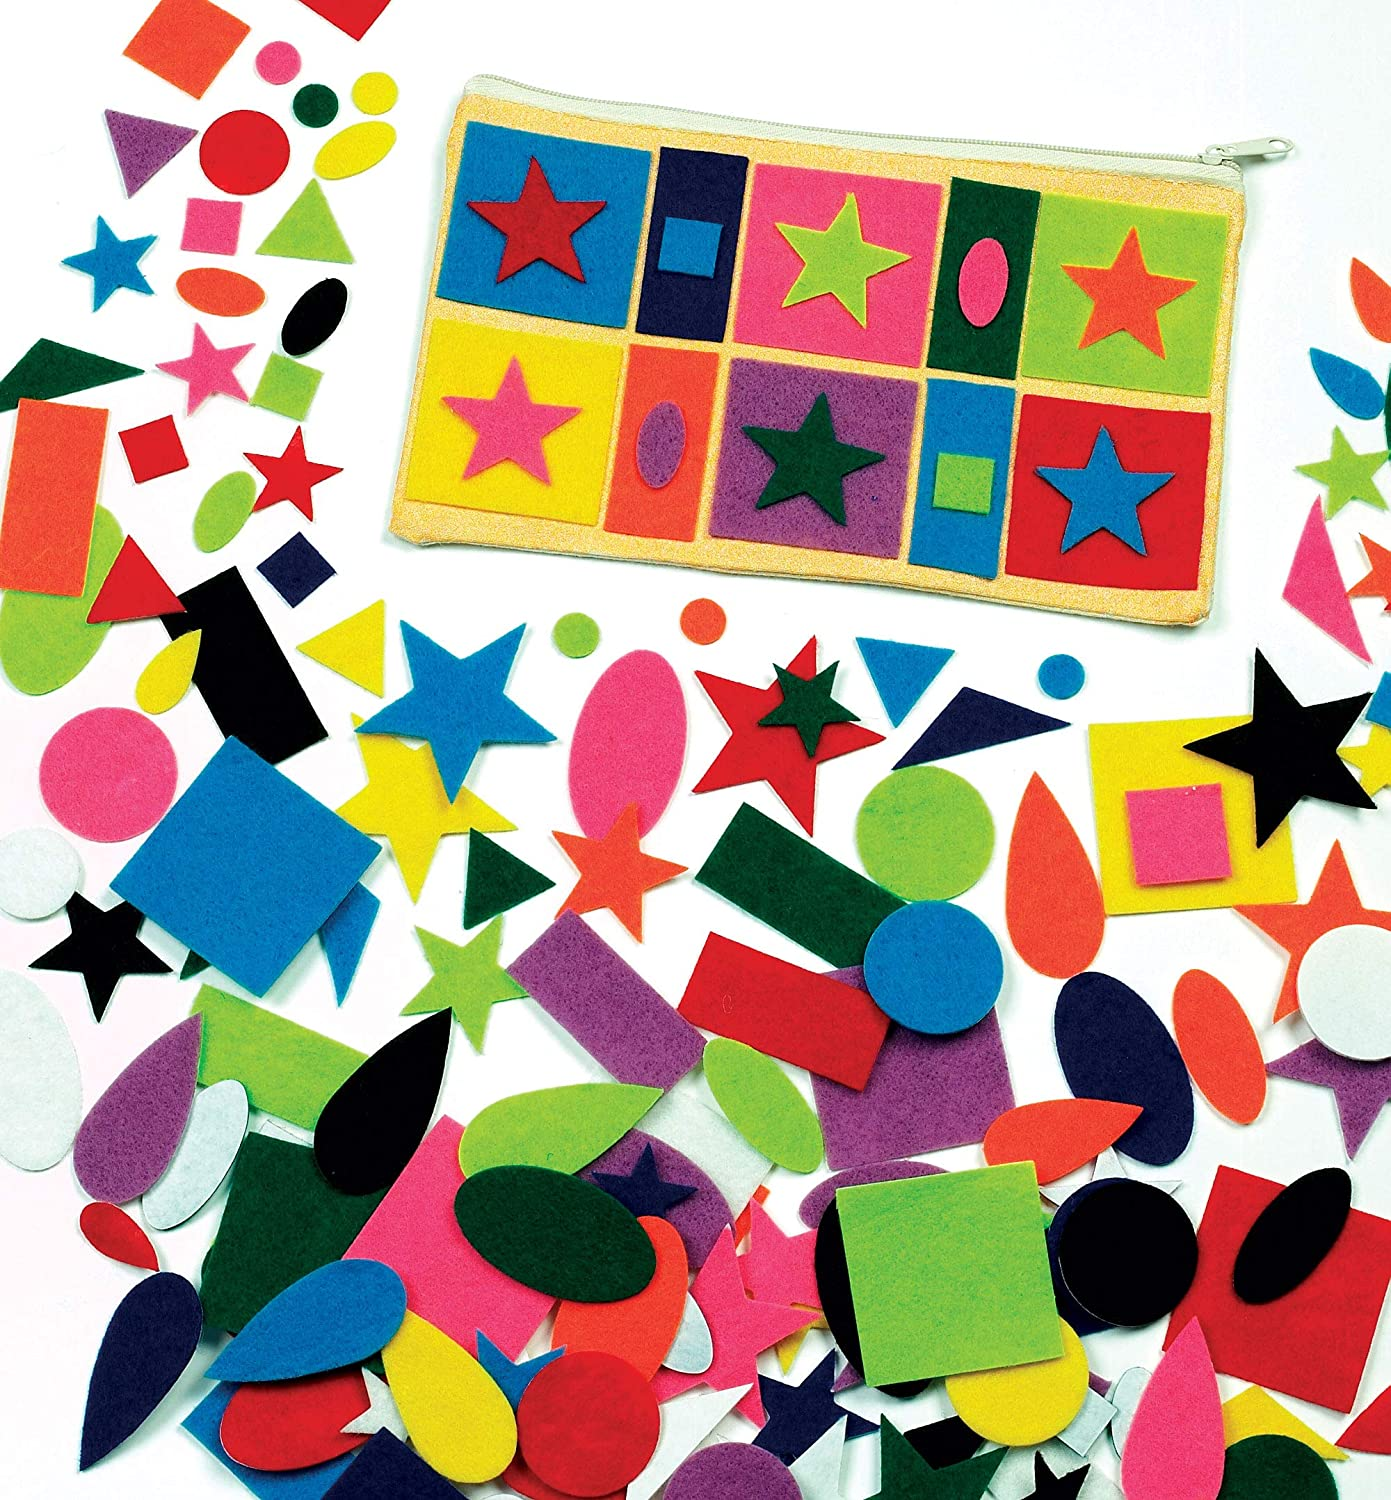 Baker Ross EK310 Self Adhesive Felt Shapes - Pack of 195, Perfect for Children to Decorate Collages and Crafts, Ideal for Schools, Craft Groups, Party & Home Crafting